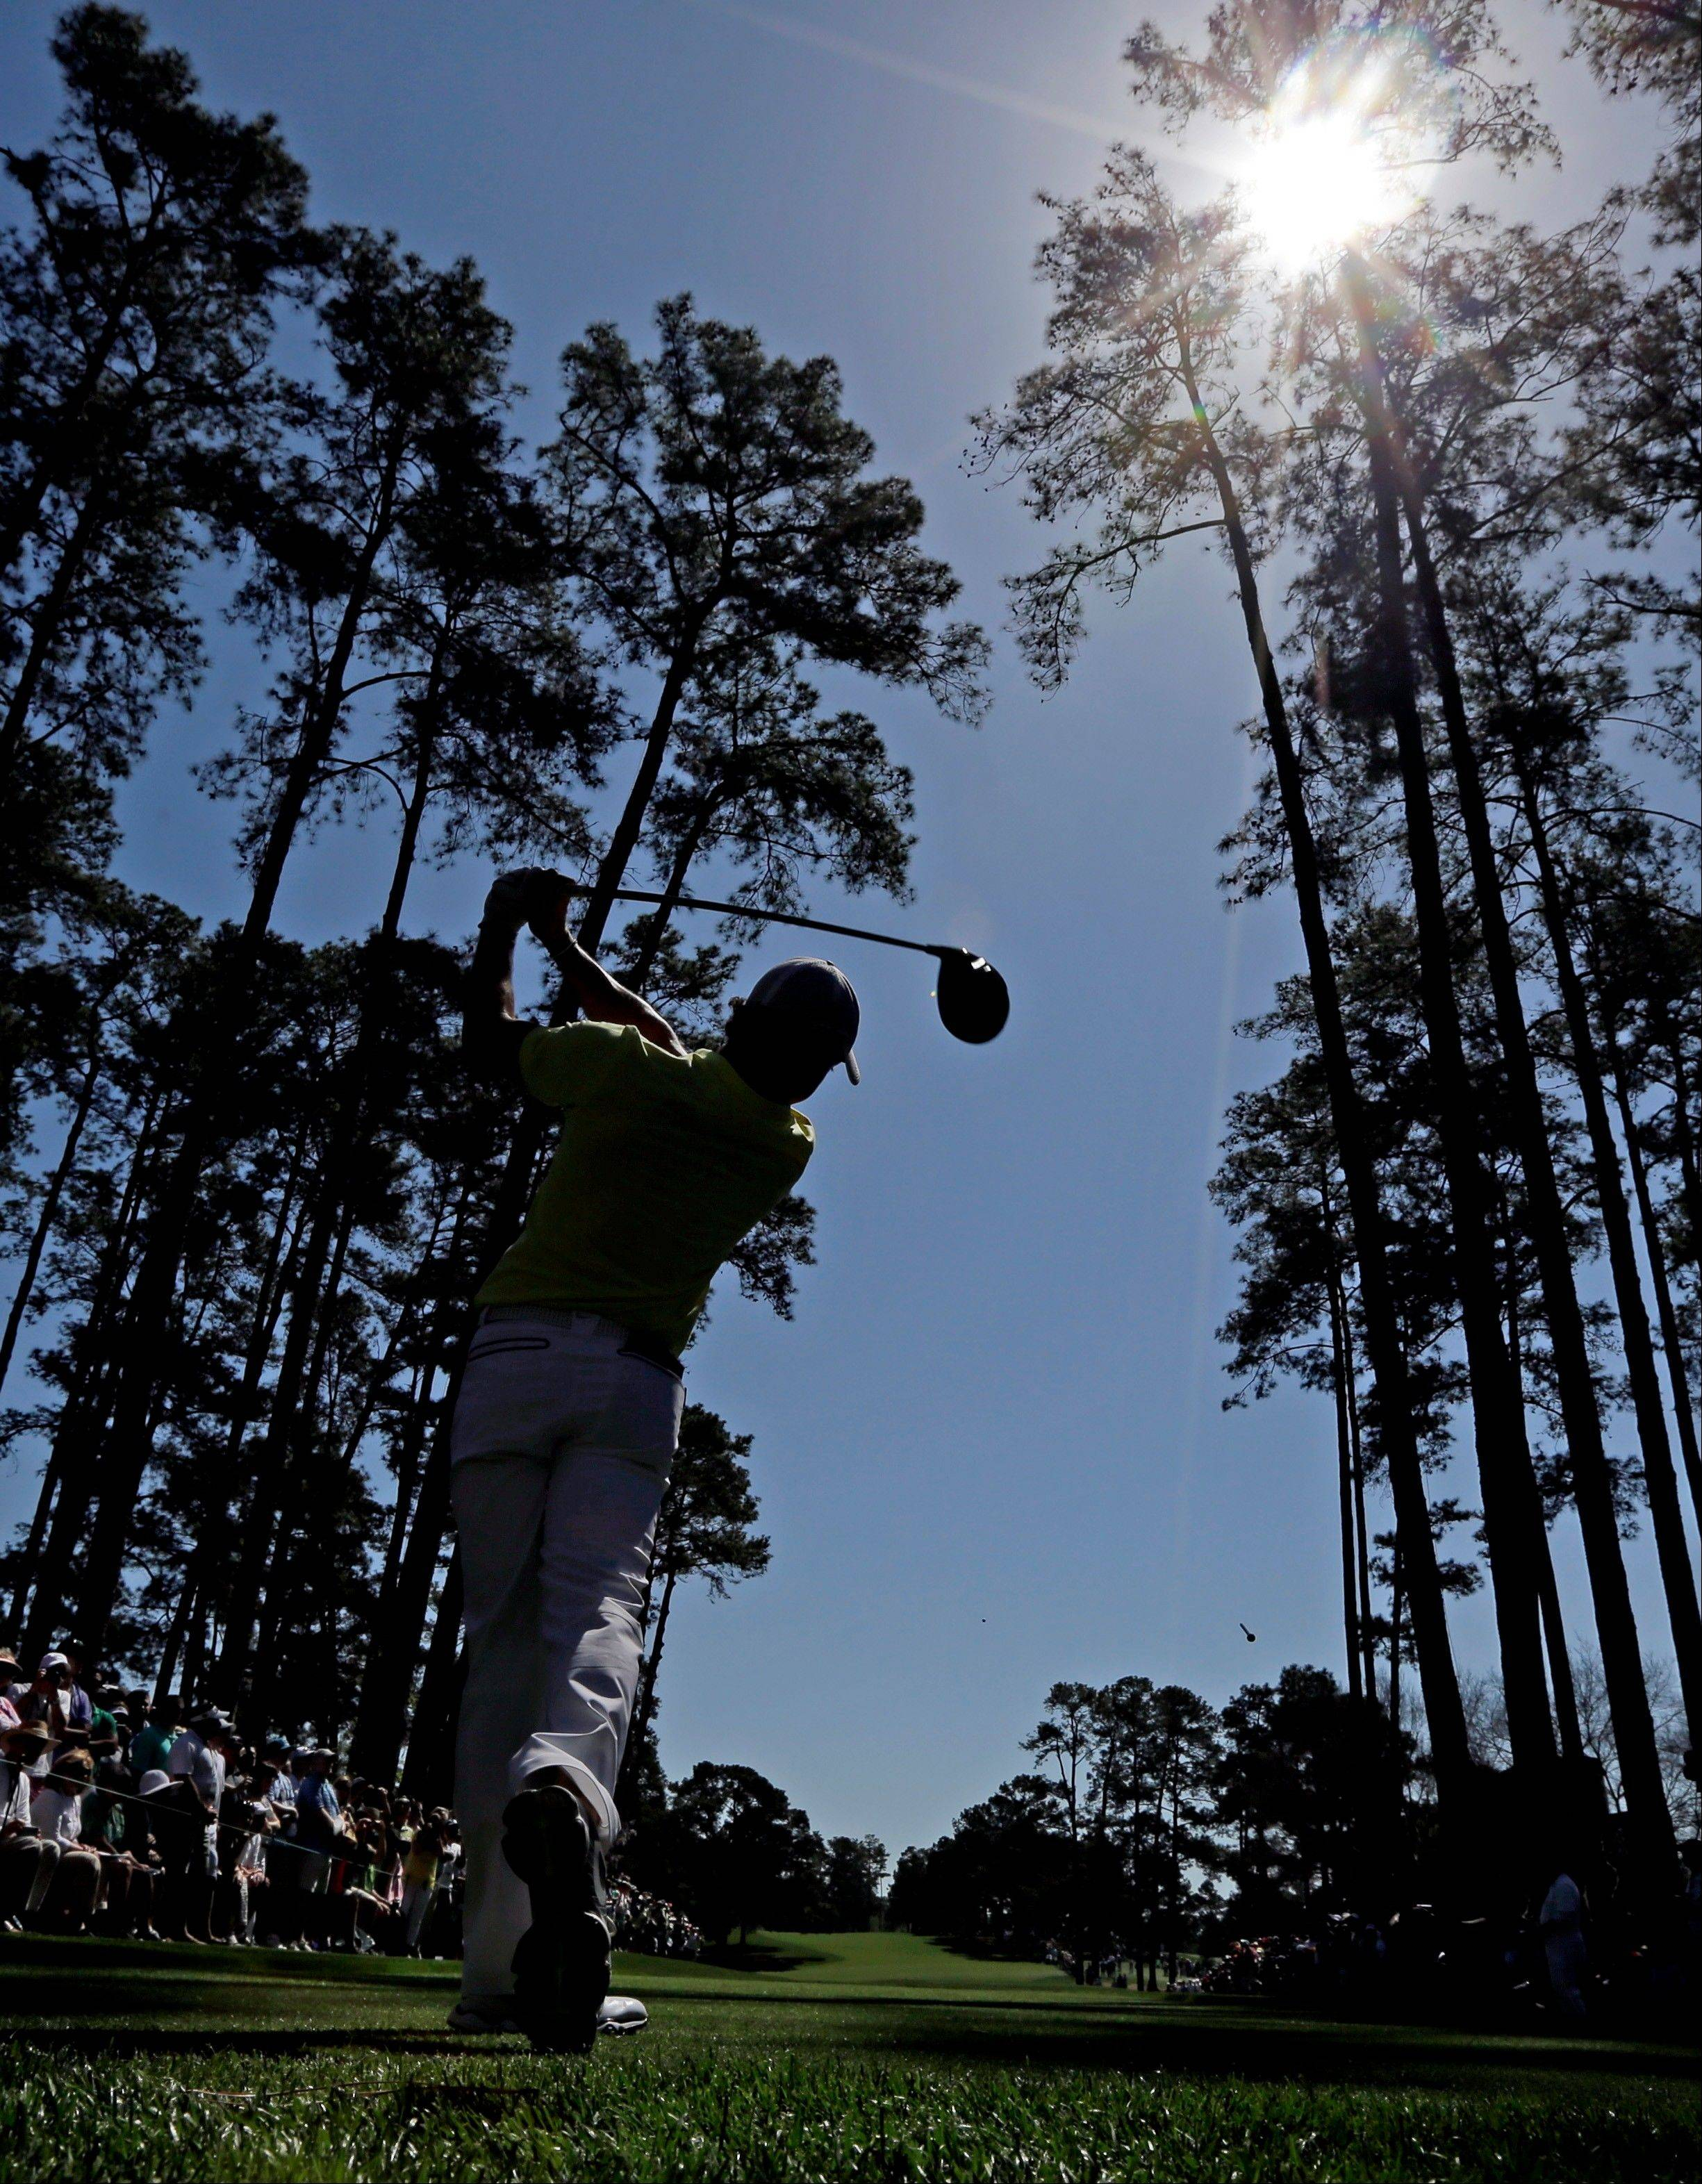 Rory McIlroy, of Northern Ireland, tees off on the 17th hole during a practice round for the Masters golf tournament Wednesday, April 10, 2013, in Augusta, Ga.